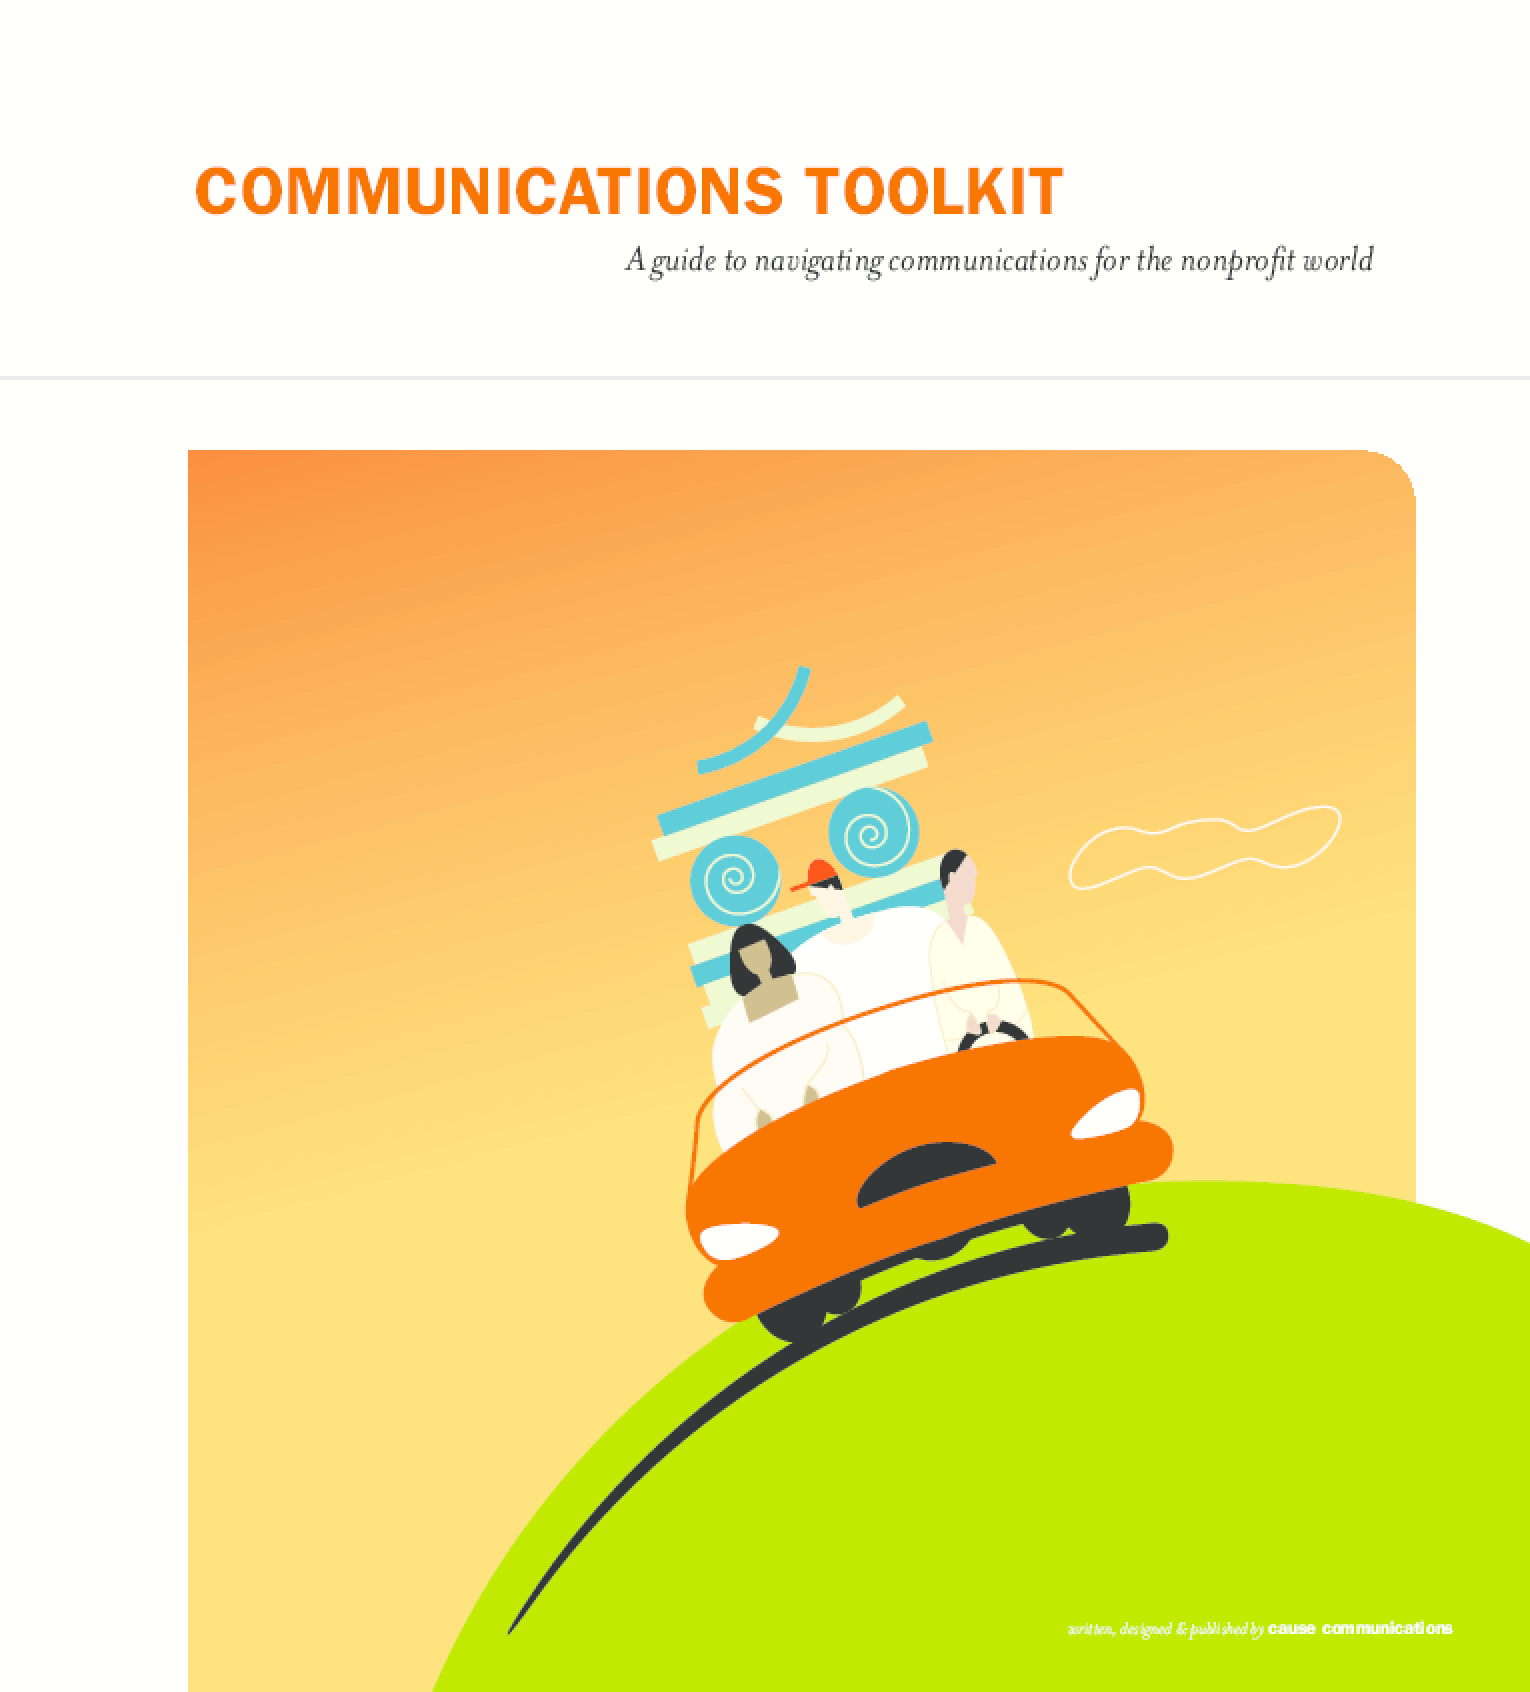 Communications Toolkit: A Guide to Navigating Communications for the Nonprofit World